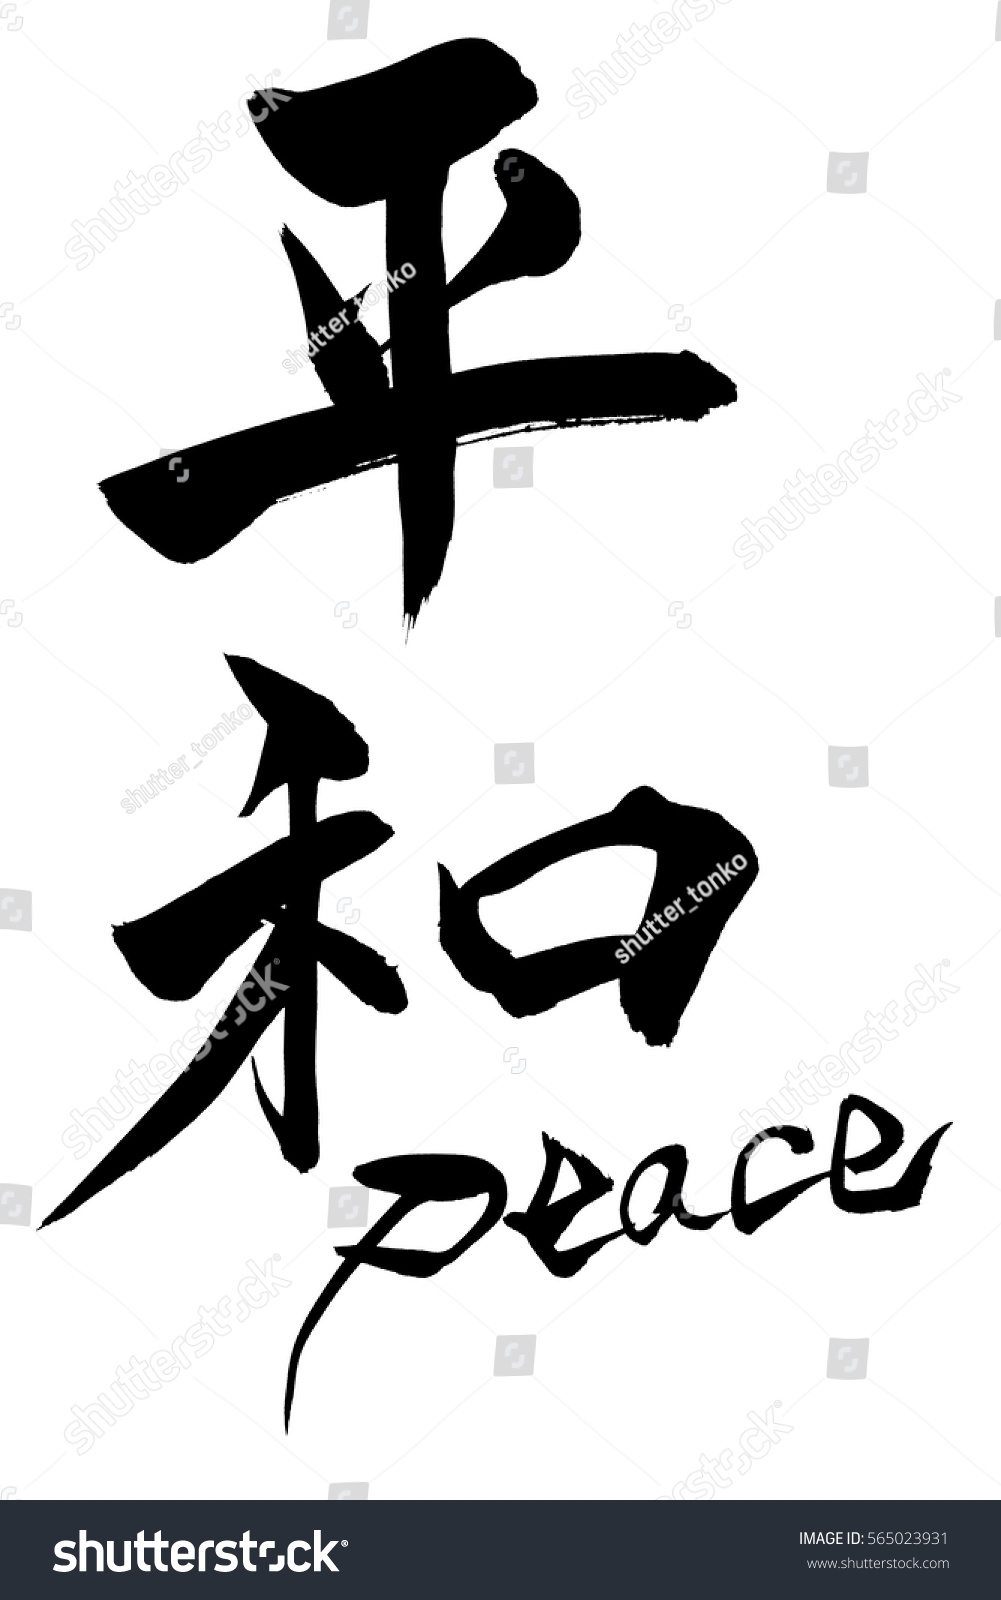 Brush character japanese text peace stock vector 565023931 brush character peaceand japanese text peace biocorpaavc Gallery